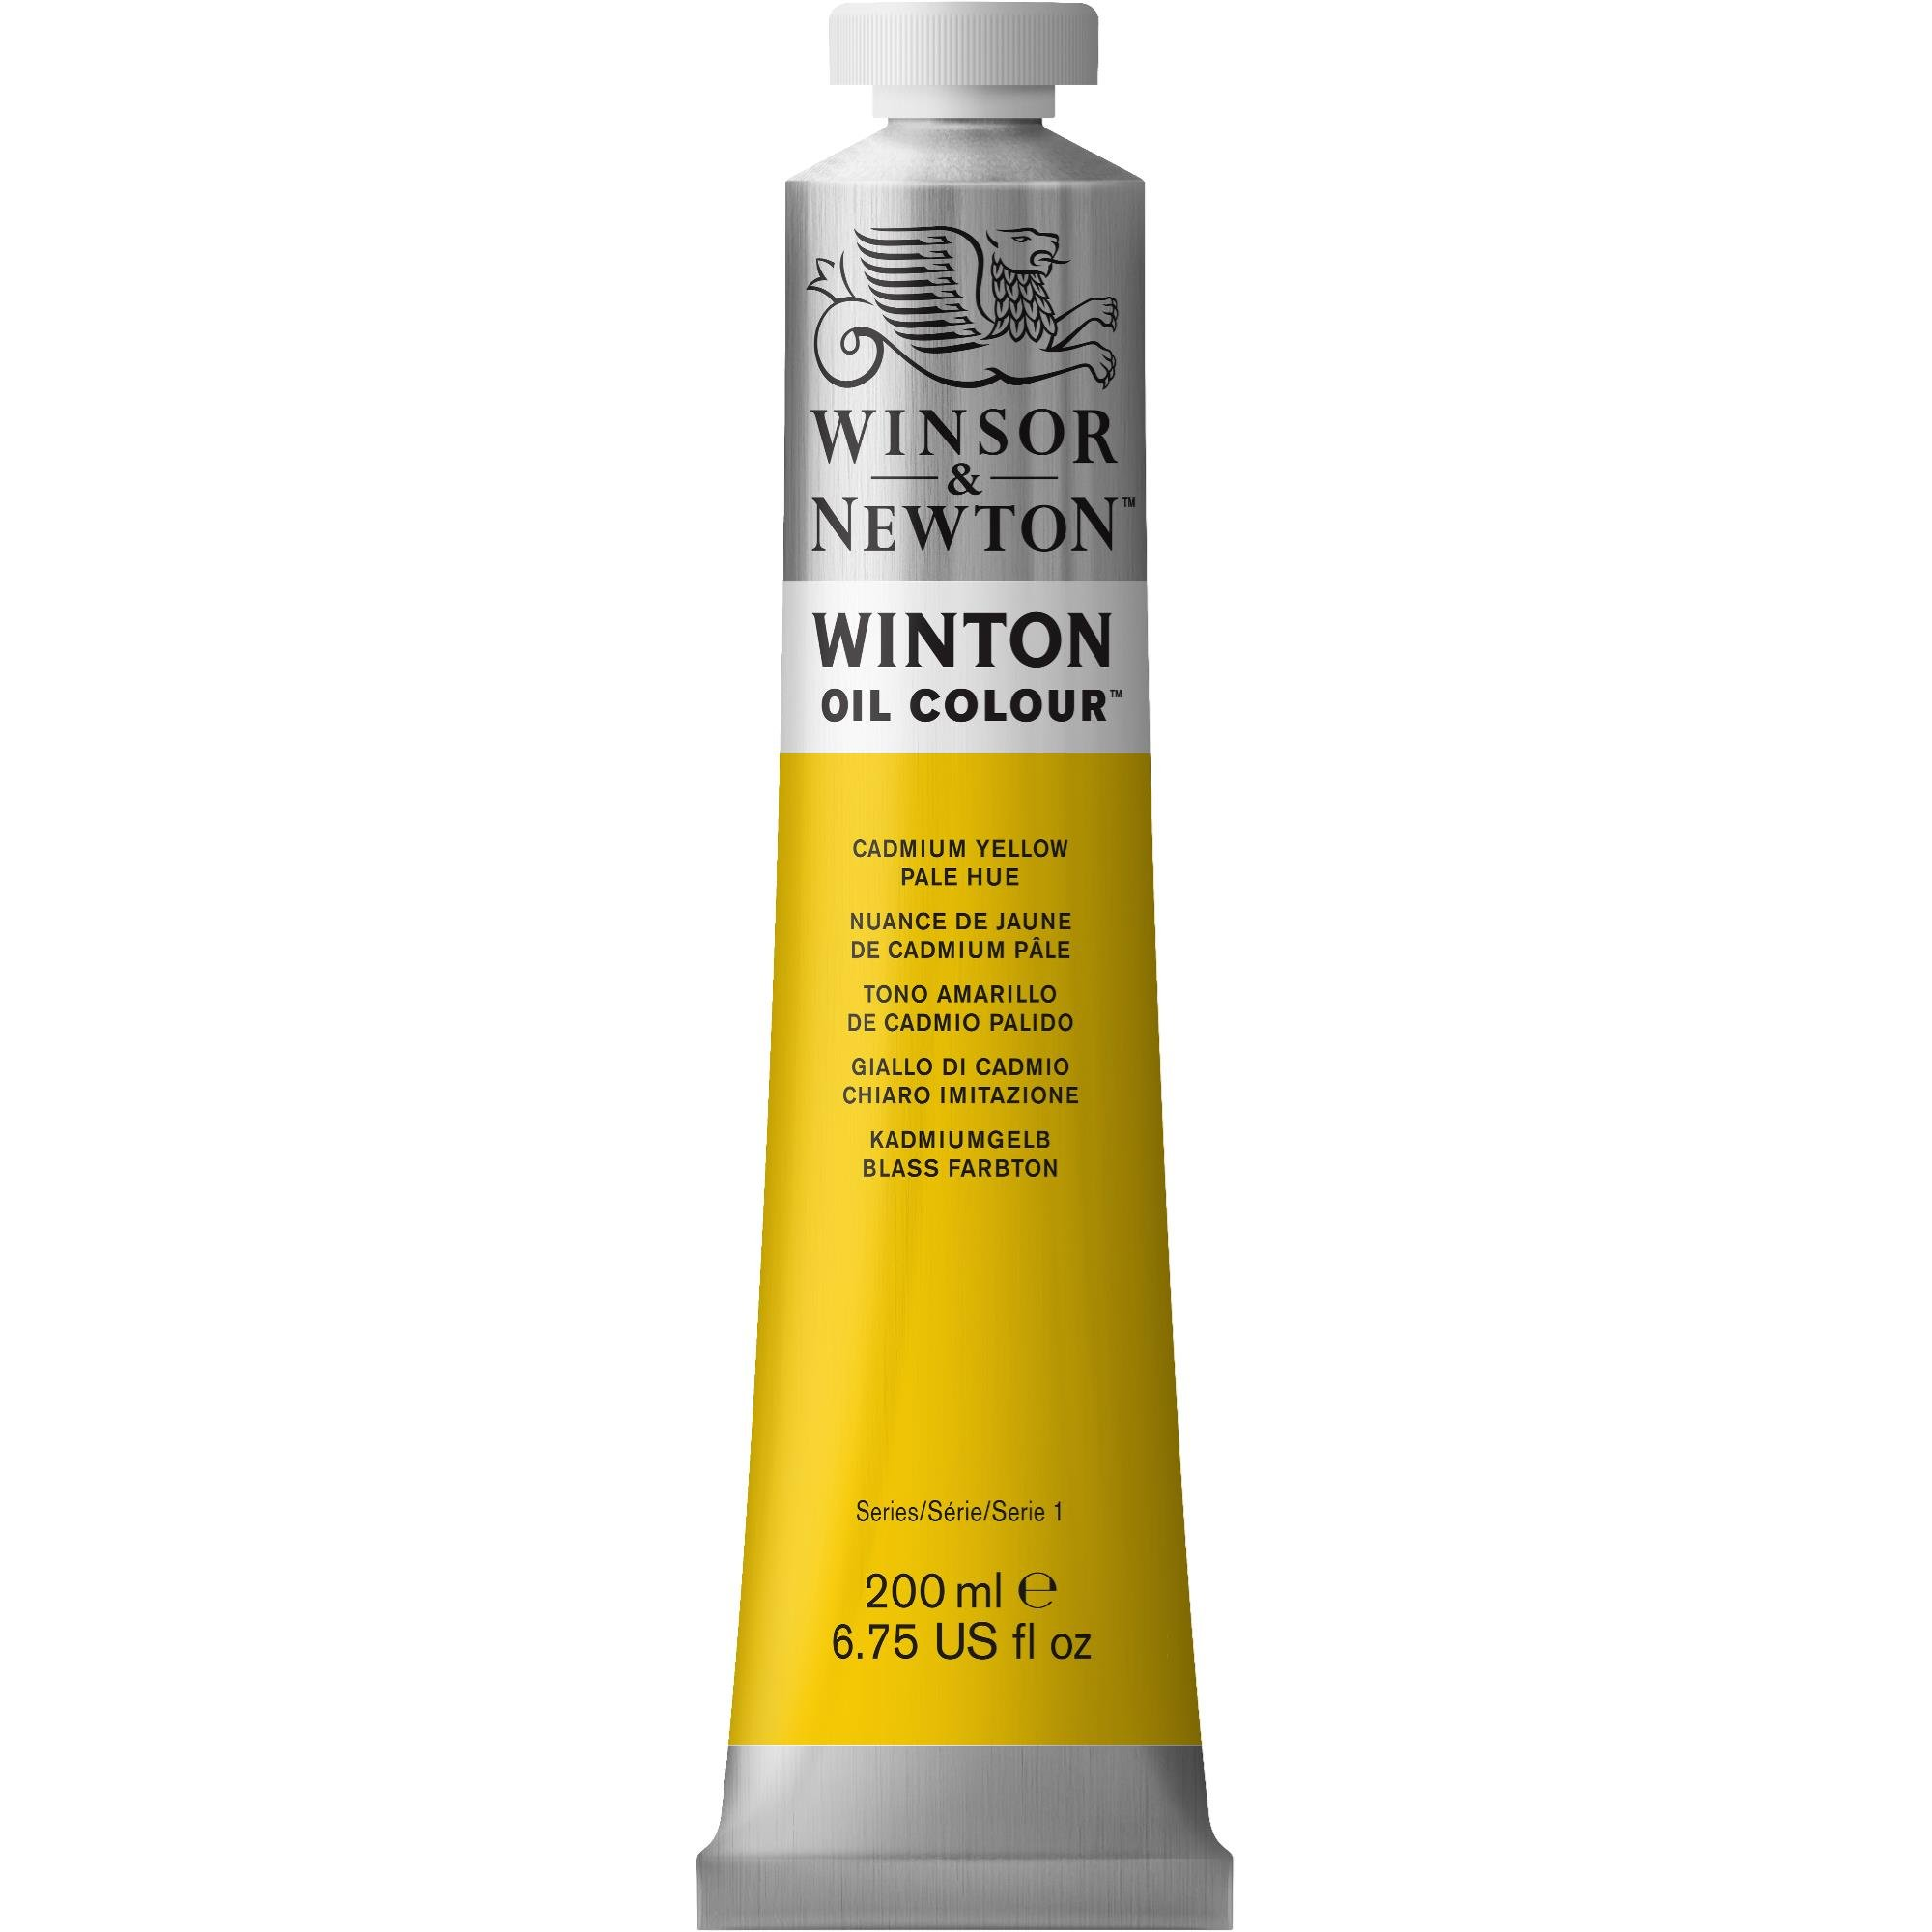 Winsor & Newton Winton Oil Colour Paint, 200ml, Cadmium Yellow Pale Hue